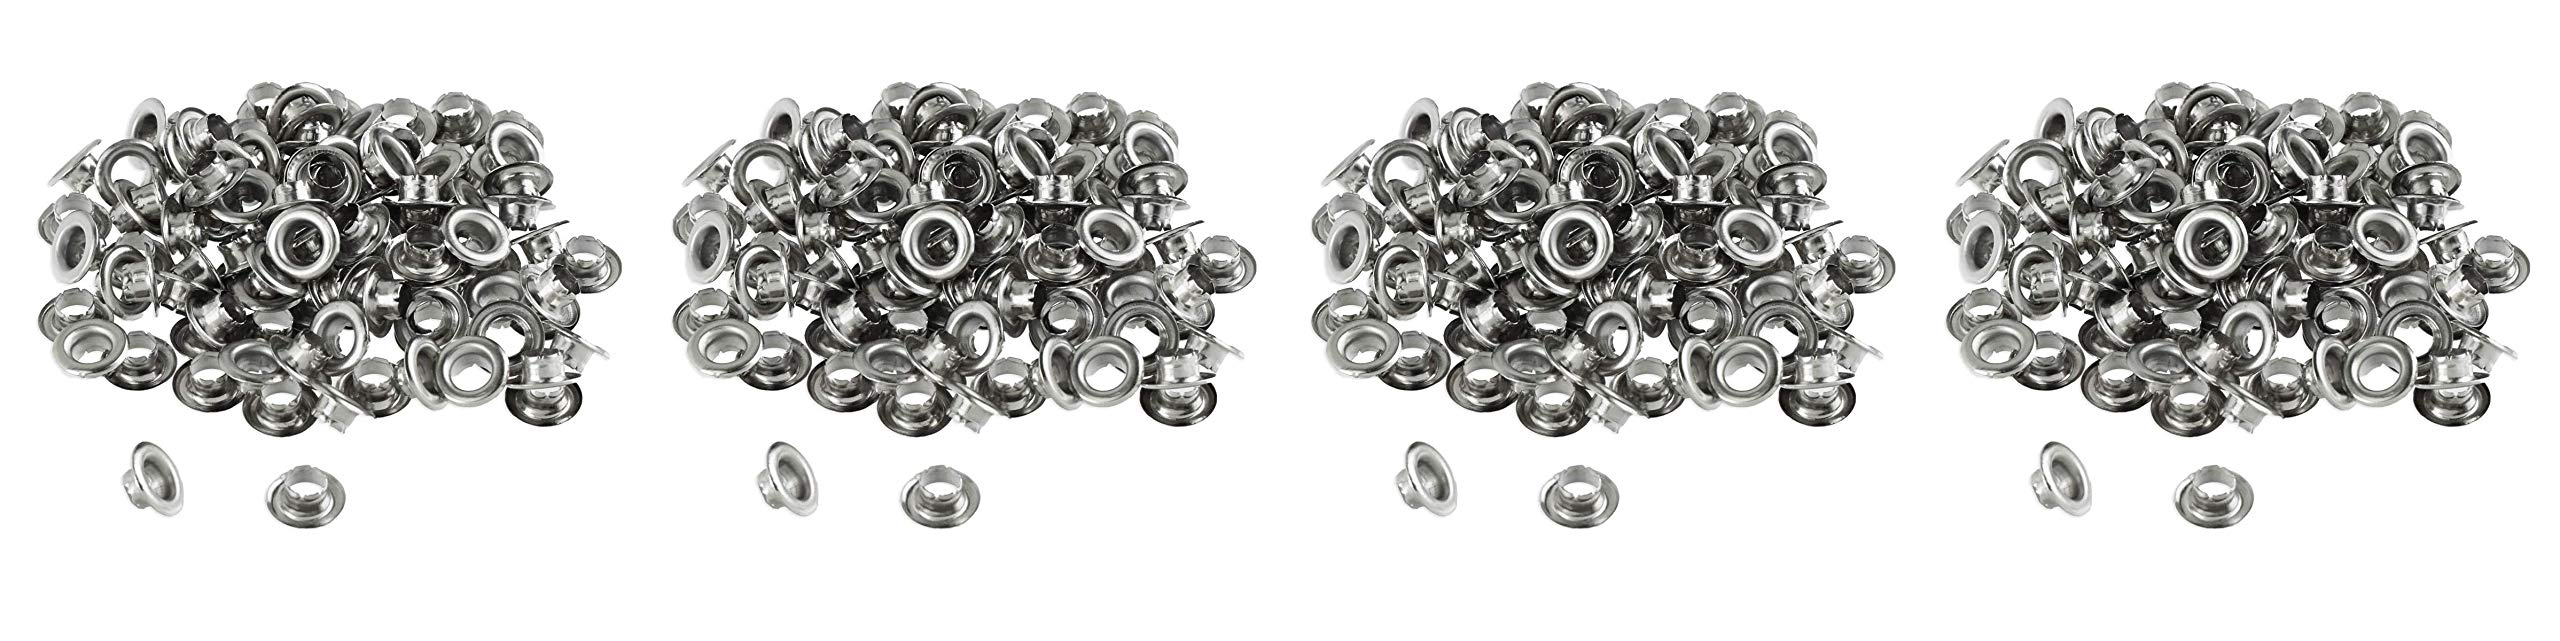 100pc 1/4'' Grommets Eyelets for Clothes, Leather, Canvas - Self-Backing (Fоur Расk) by ProTool